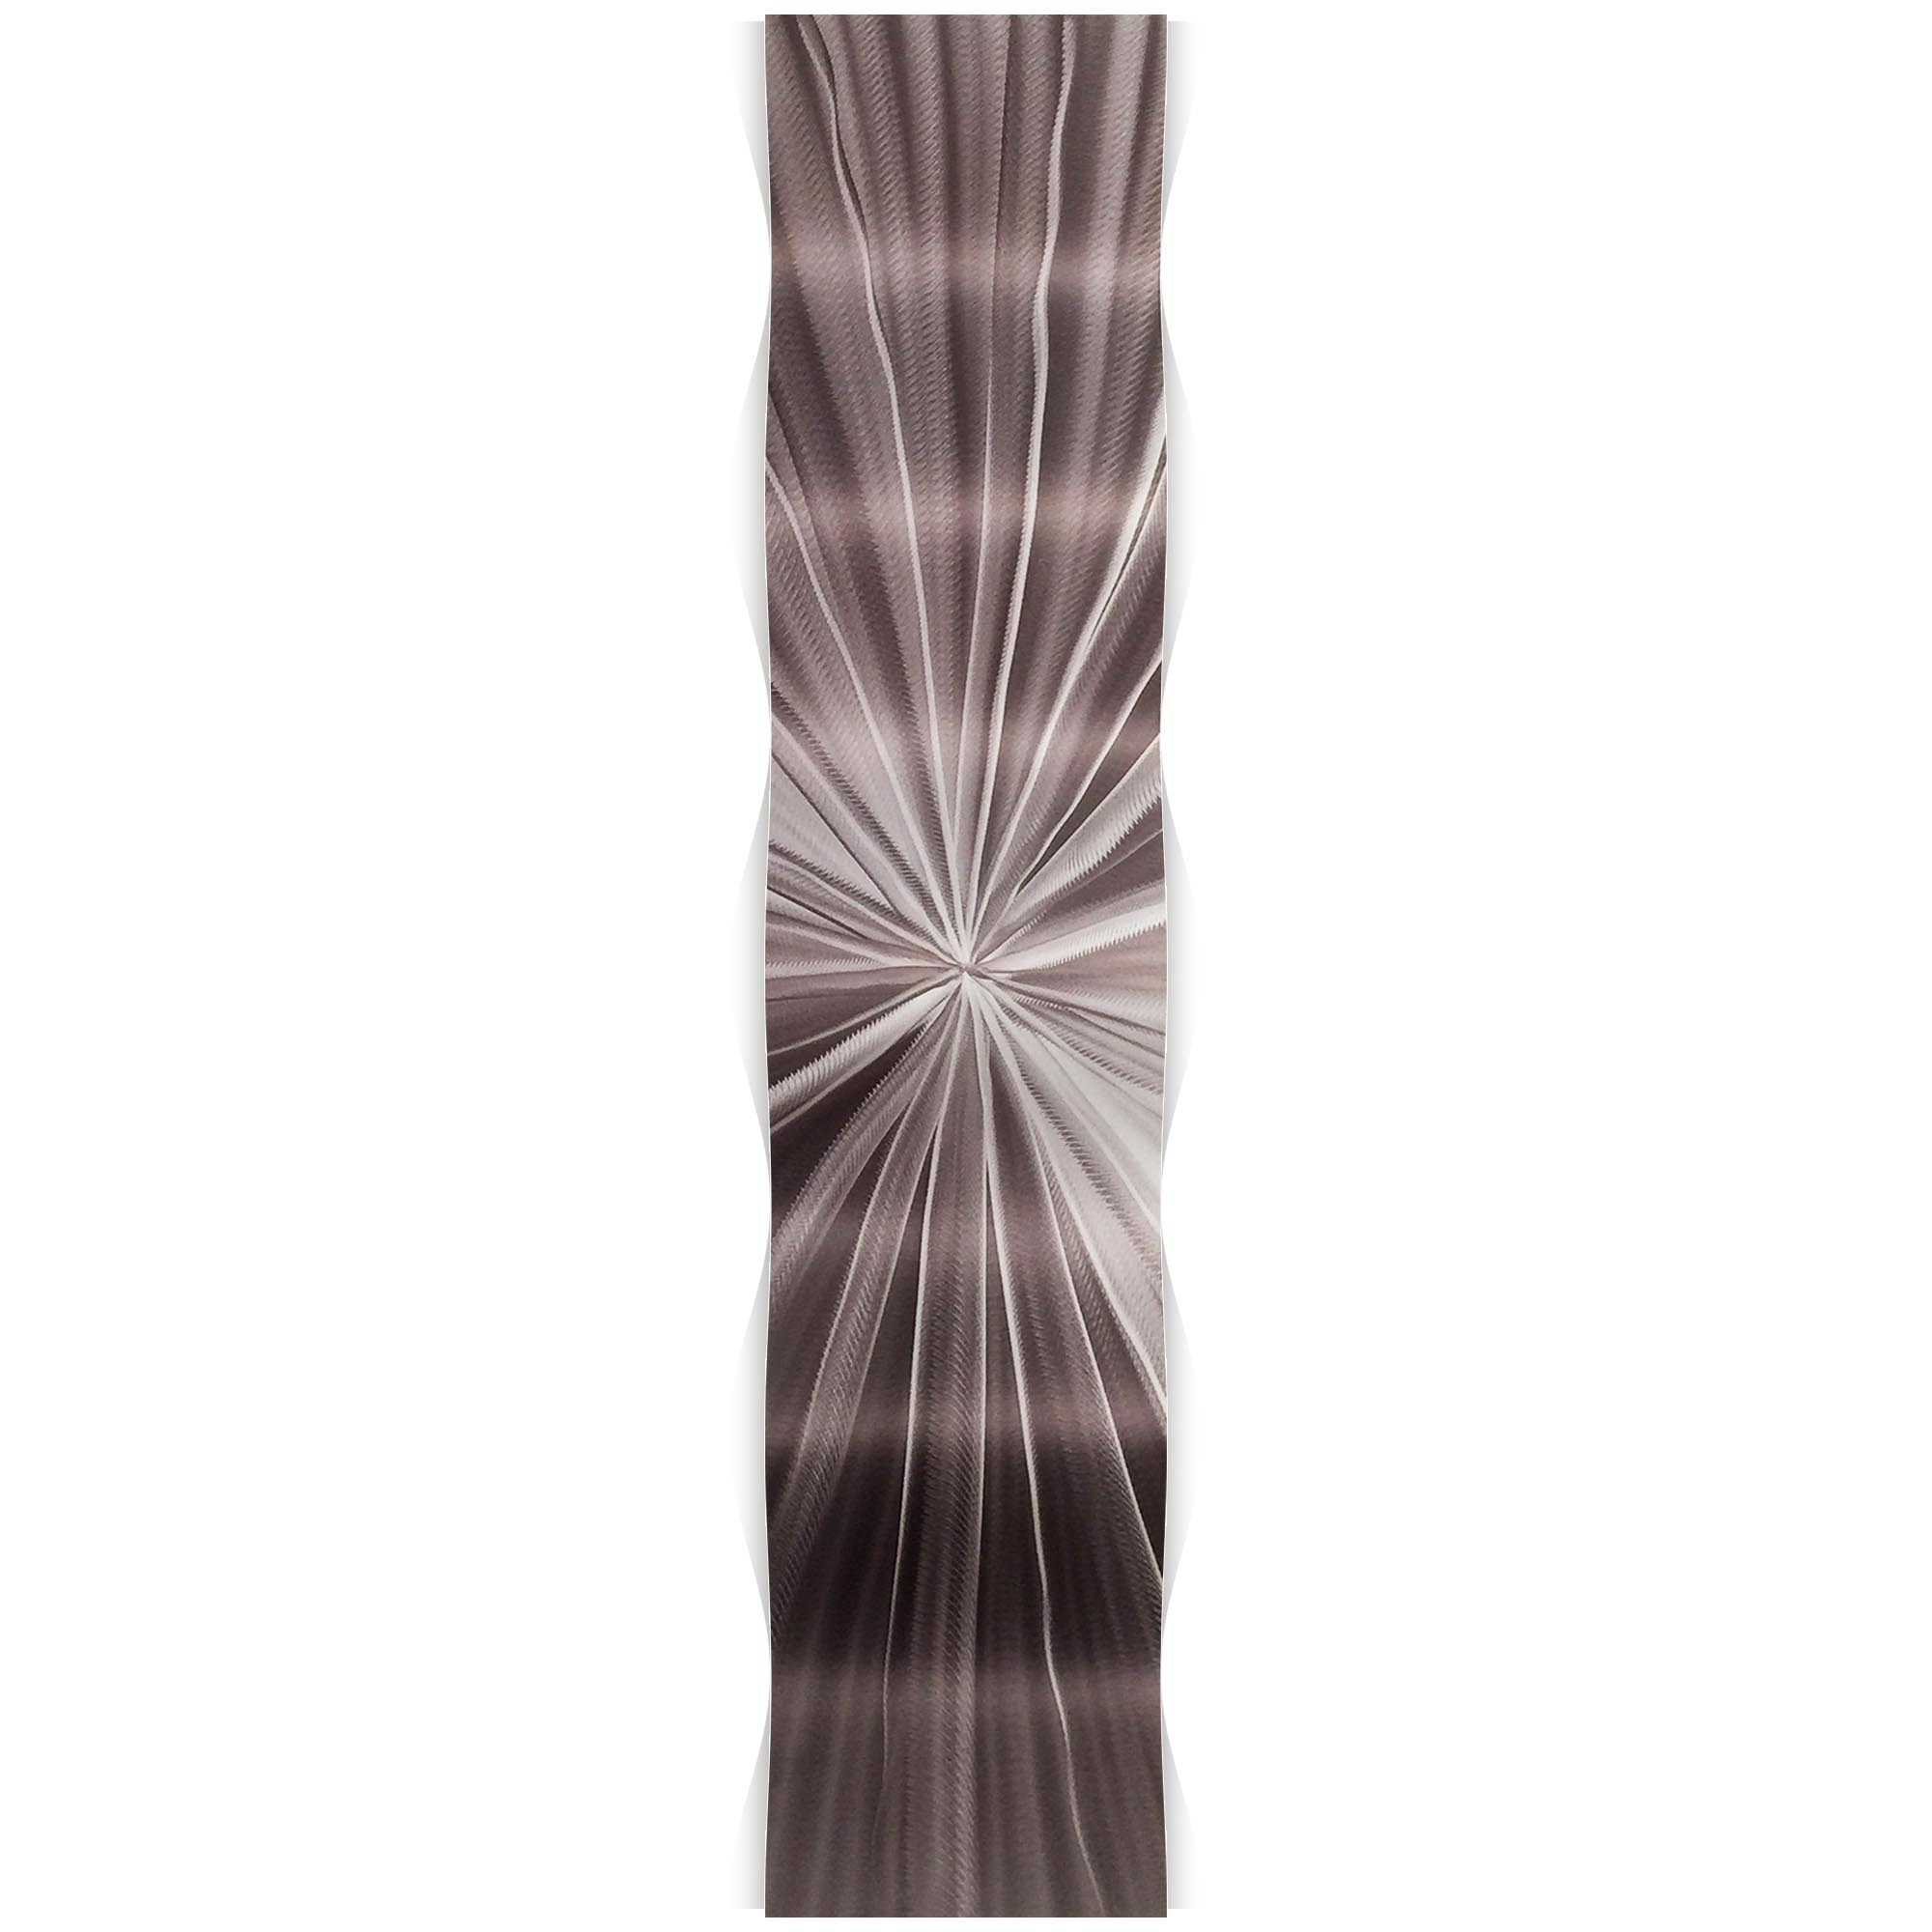 Tantalum Wave 9.5x44in. Metal Eclectic Decor - Image 2